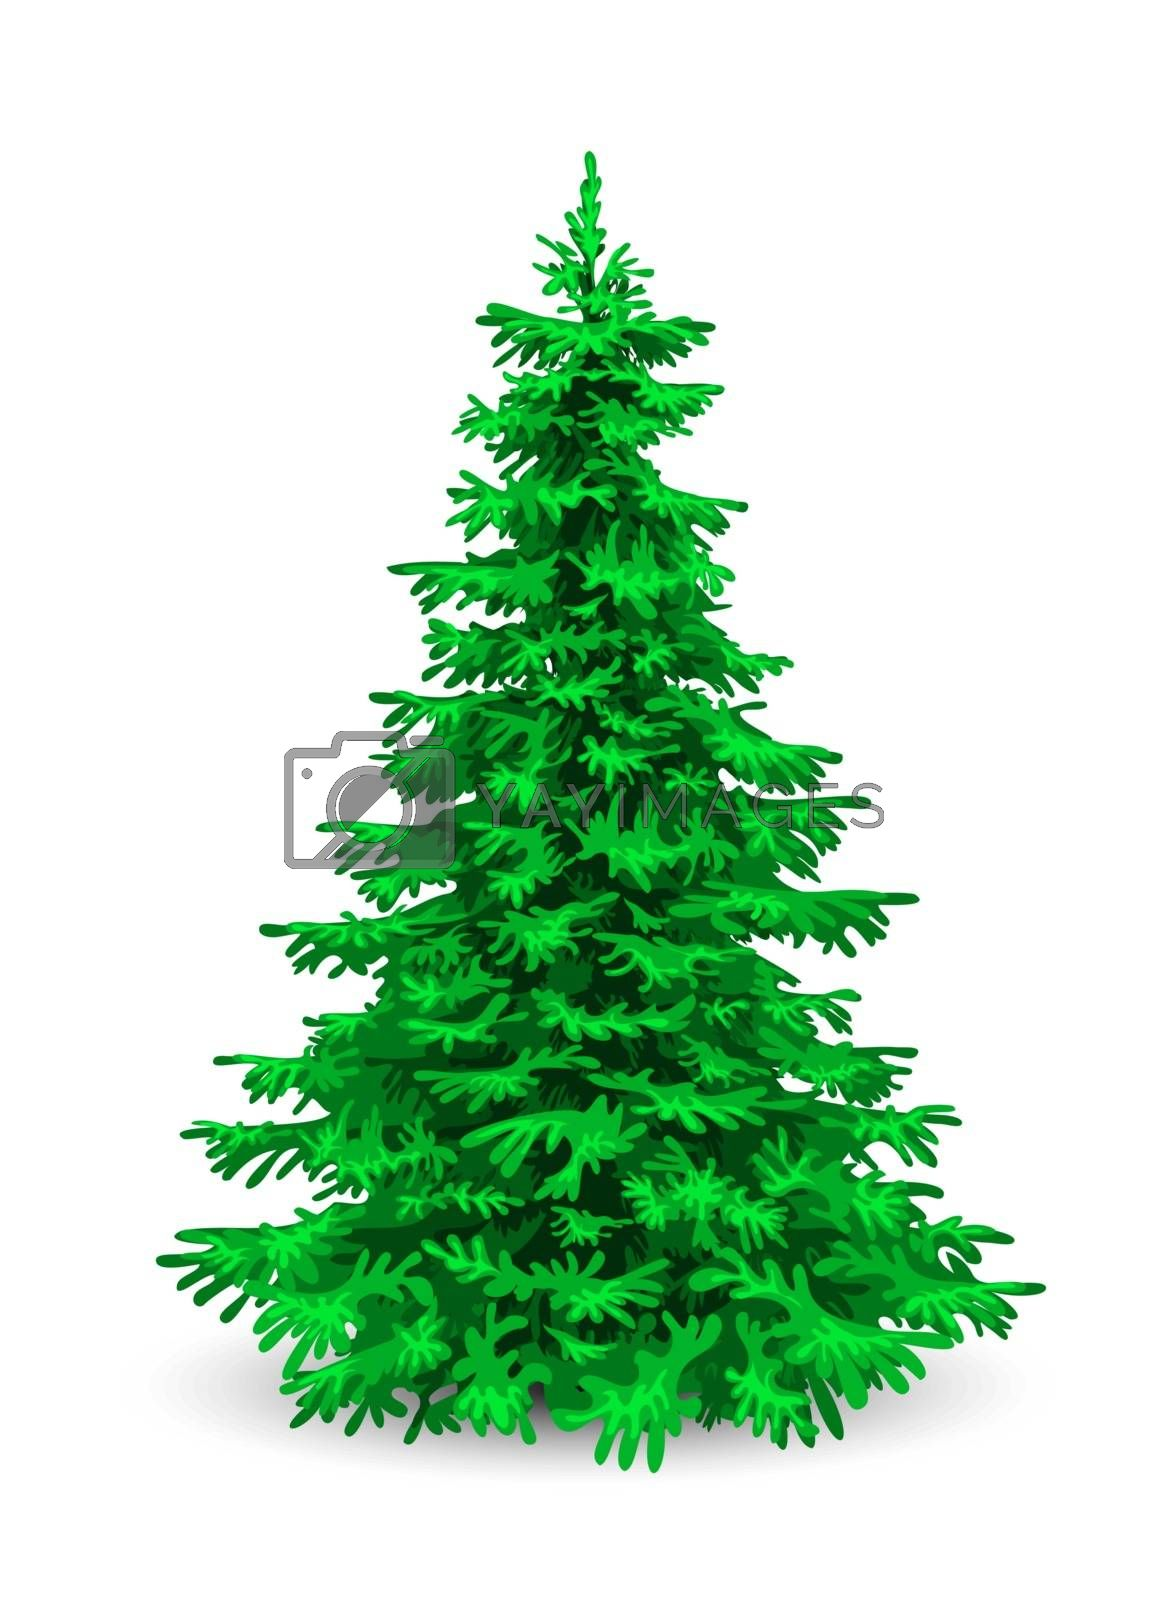 Fluffy green christmas tree by liolle